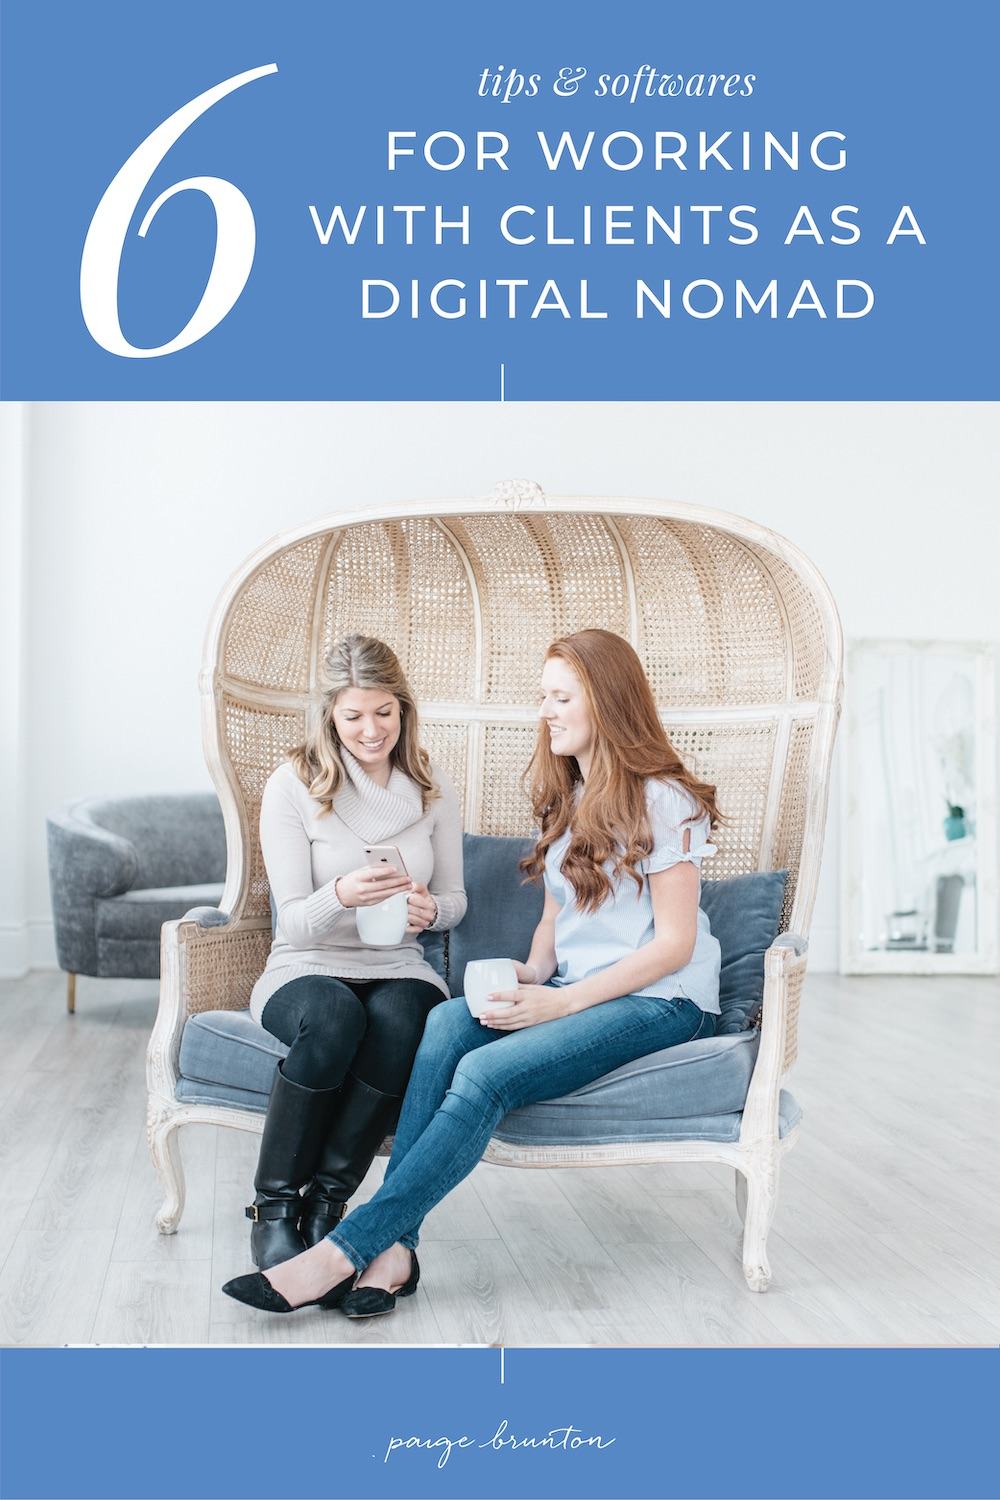 6-6 tips and softwares for working with clients as a digital nomad.jpg